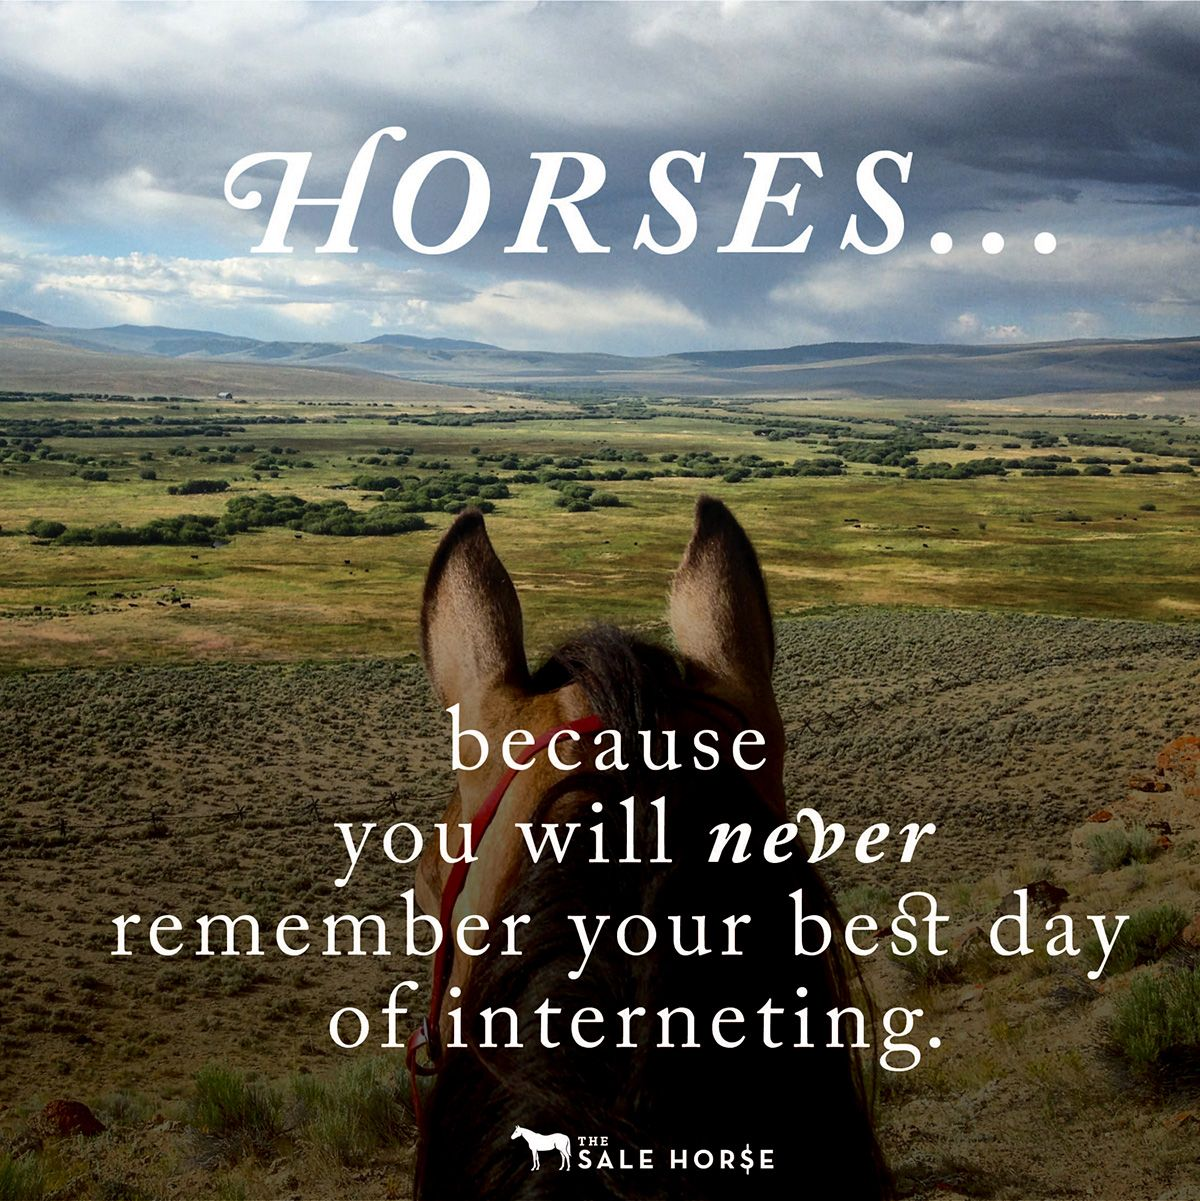 17 horse quotes to inspire action to git er done in 2017